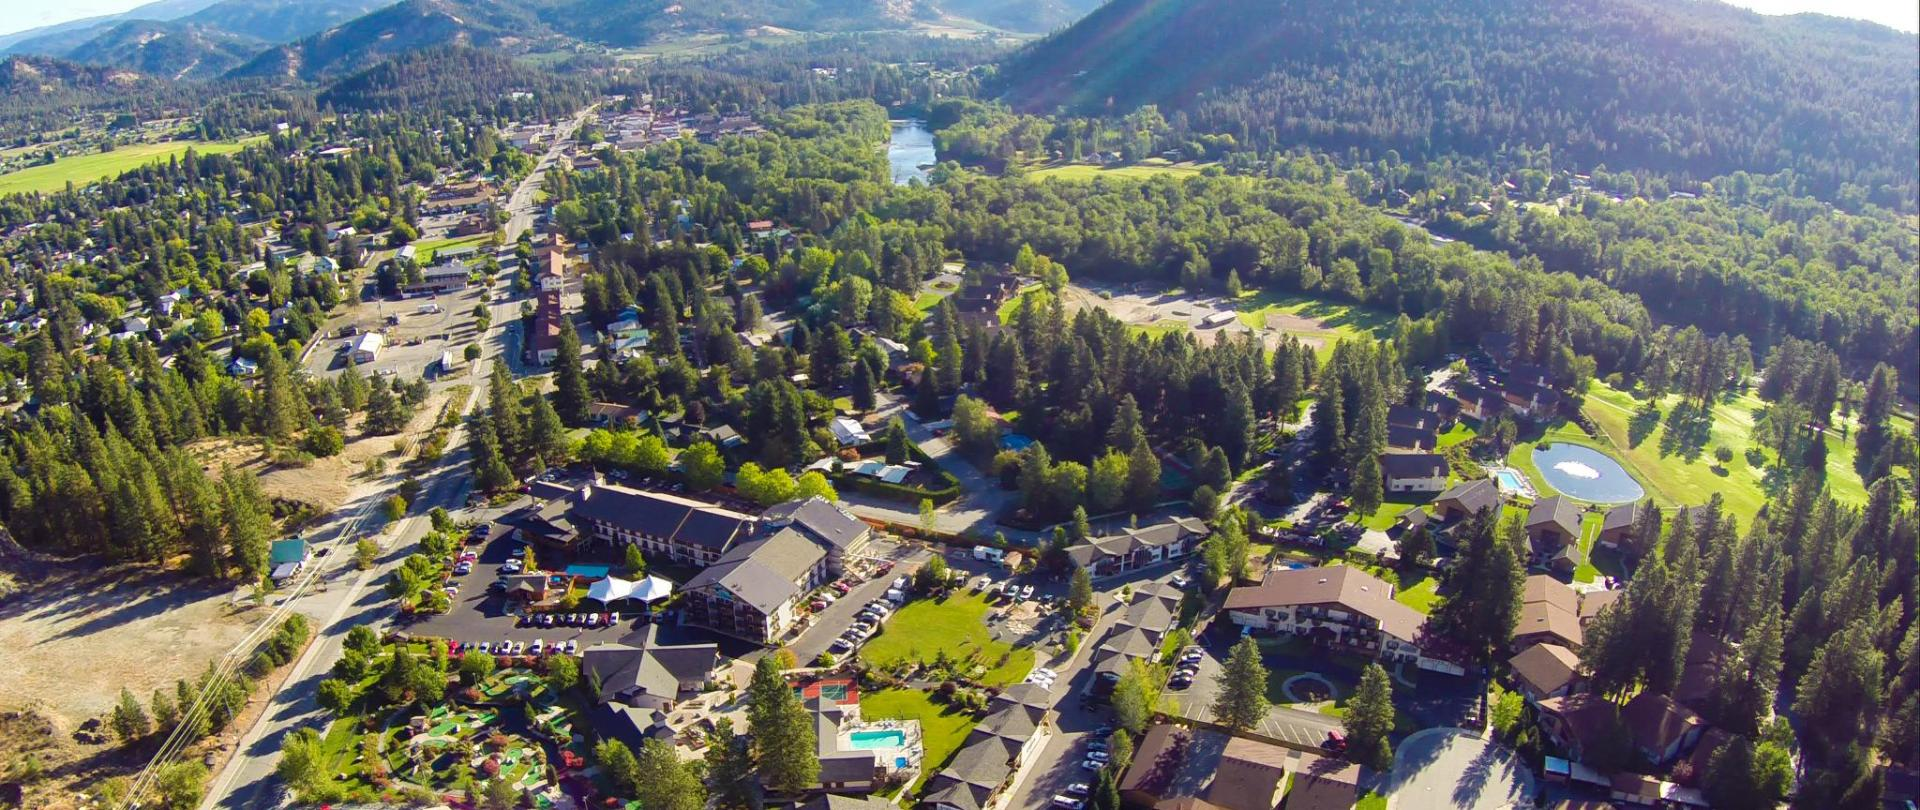 Aerial view of IVR in Leavenworth.jpg